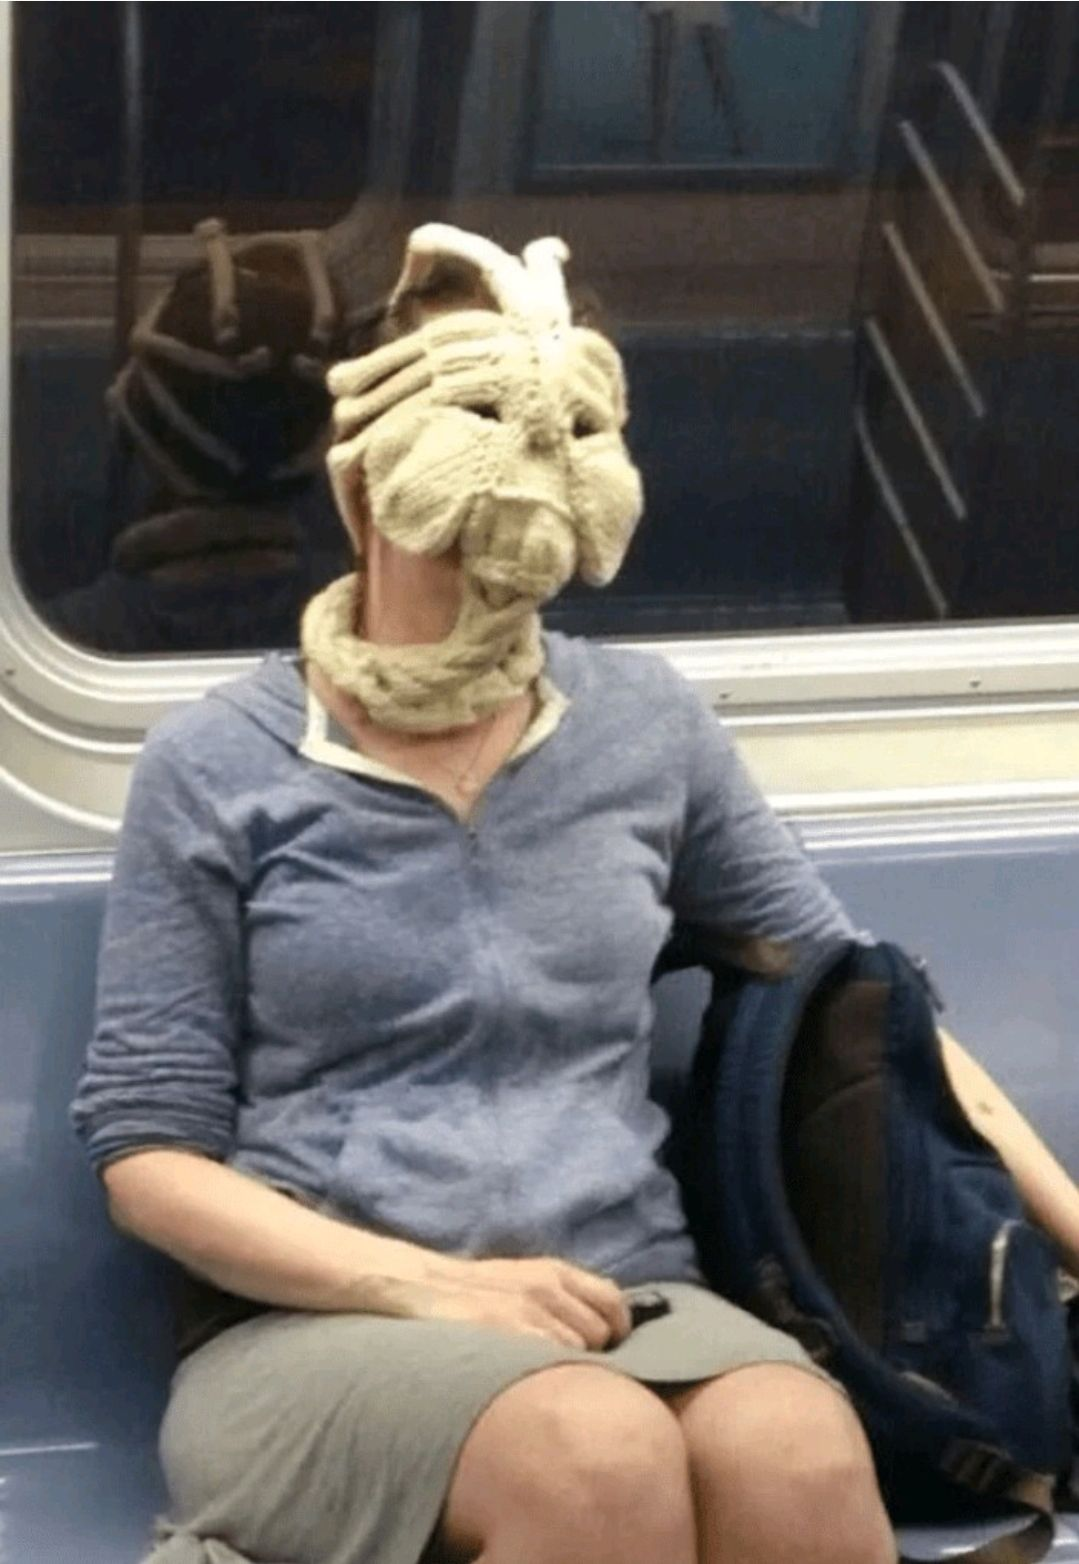 Is it a face warmer or a face hugger? Regardless, I kind of want one.